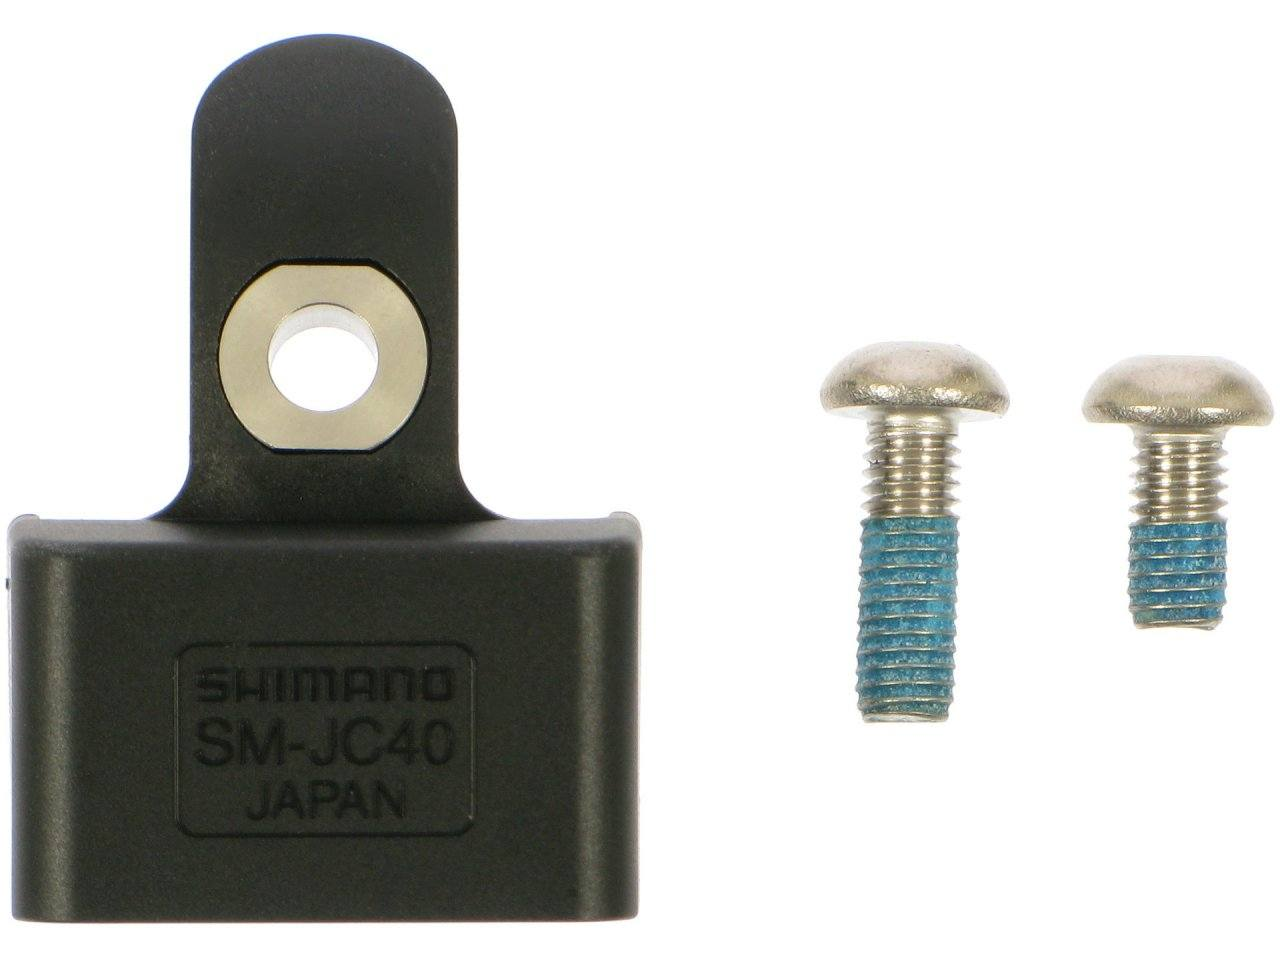 4 Ports Shimano Dura-Ace Di2 SM-JC41 Junction Box For Internal Wire Routing